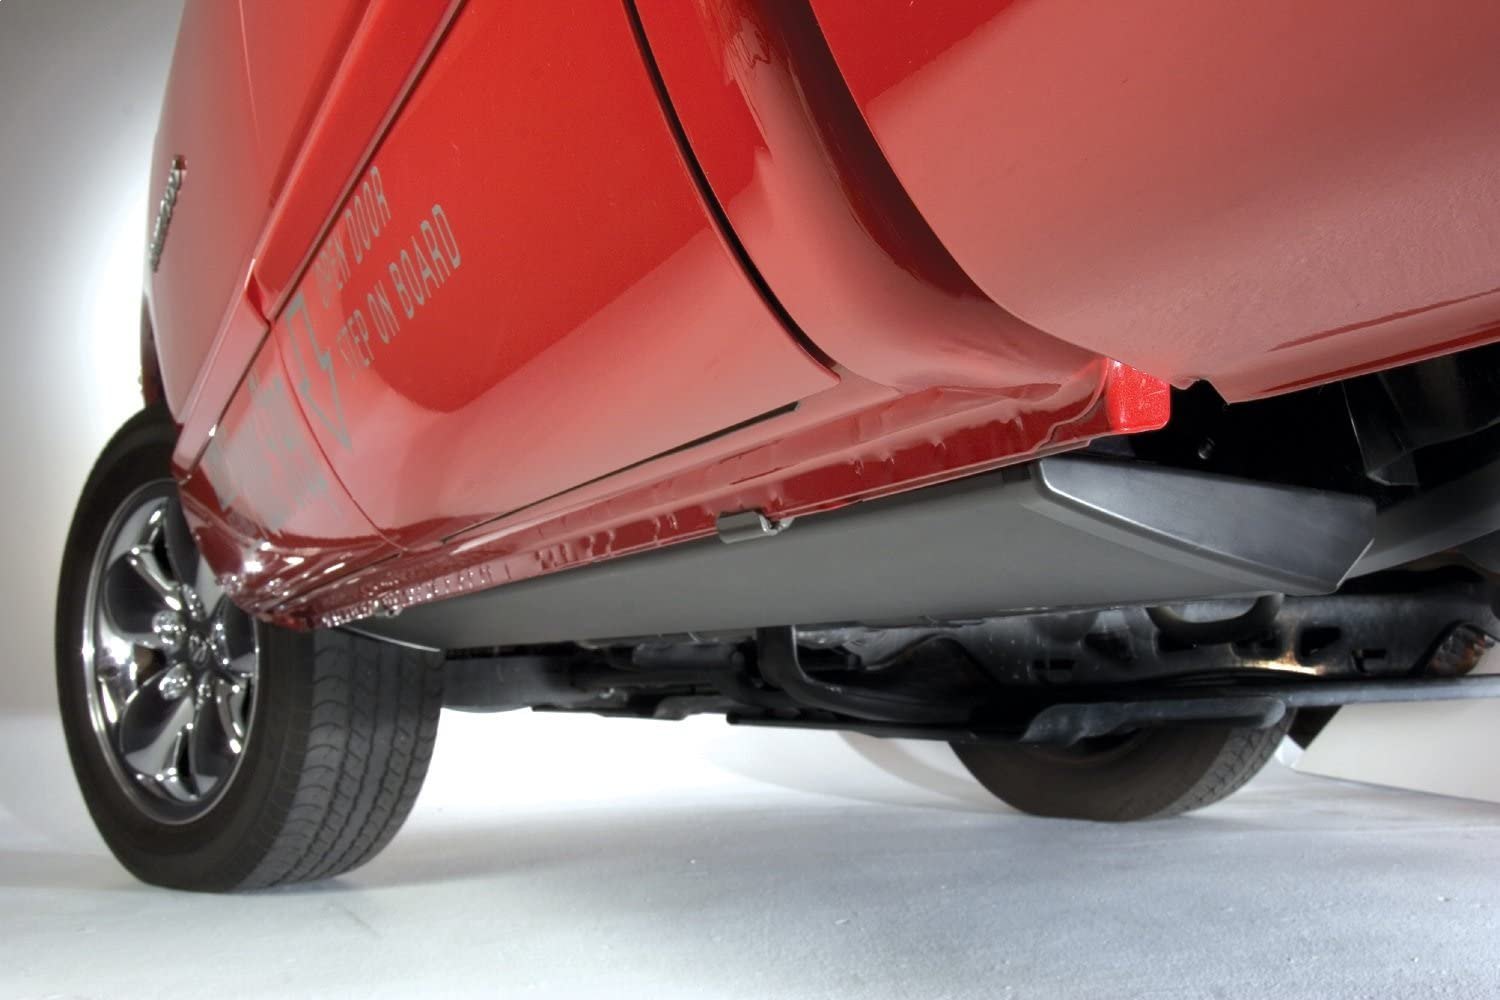 2015-2019 Silverado /& Sierra 2500//3500 with Double and Crew Cabs Excludes Diesel AMP Research 76154-01A PowerStep Electric Running Boards Plug N Play System for 2014-2018 Silverado /& Sierra 1500